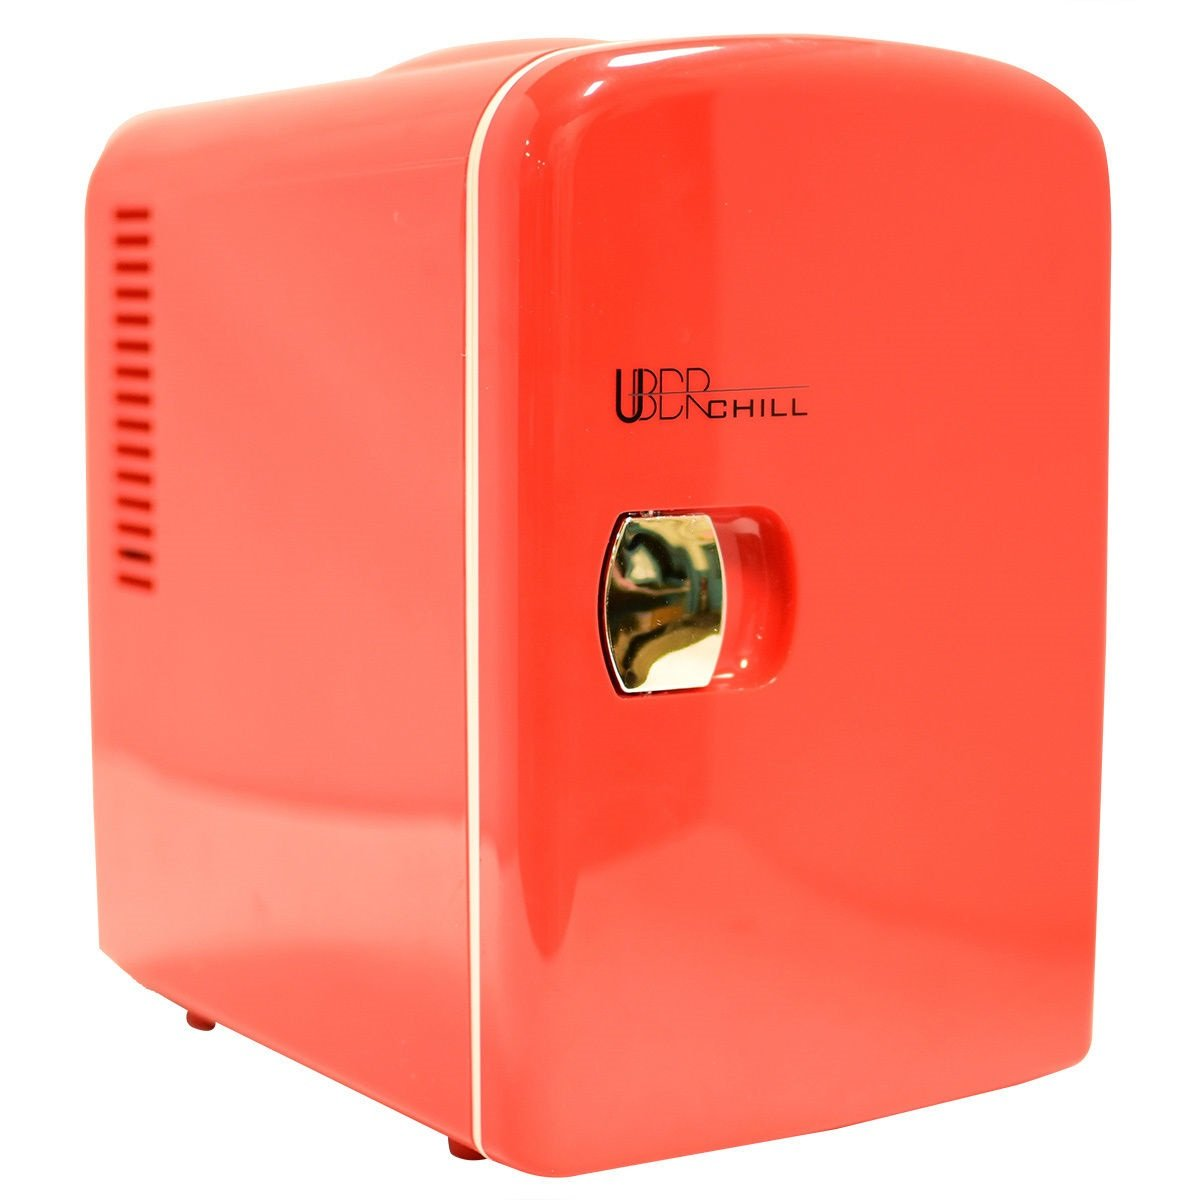 Uber Appliance UB-CH1 Uber Chill Mini Fridge 6-can portable thermoelectric cooler and warmer mini fridge for bedroom, office or dorm (Uber Red) by Uber Appliance